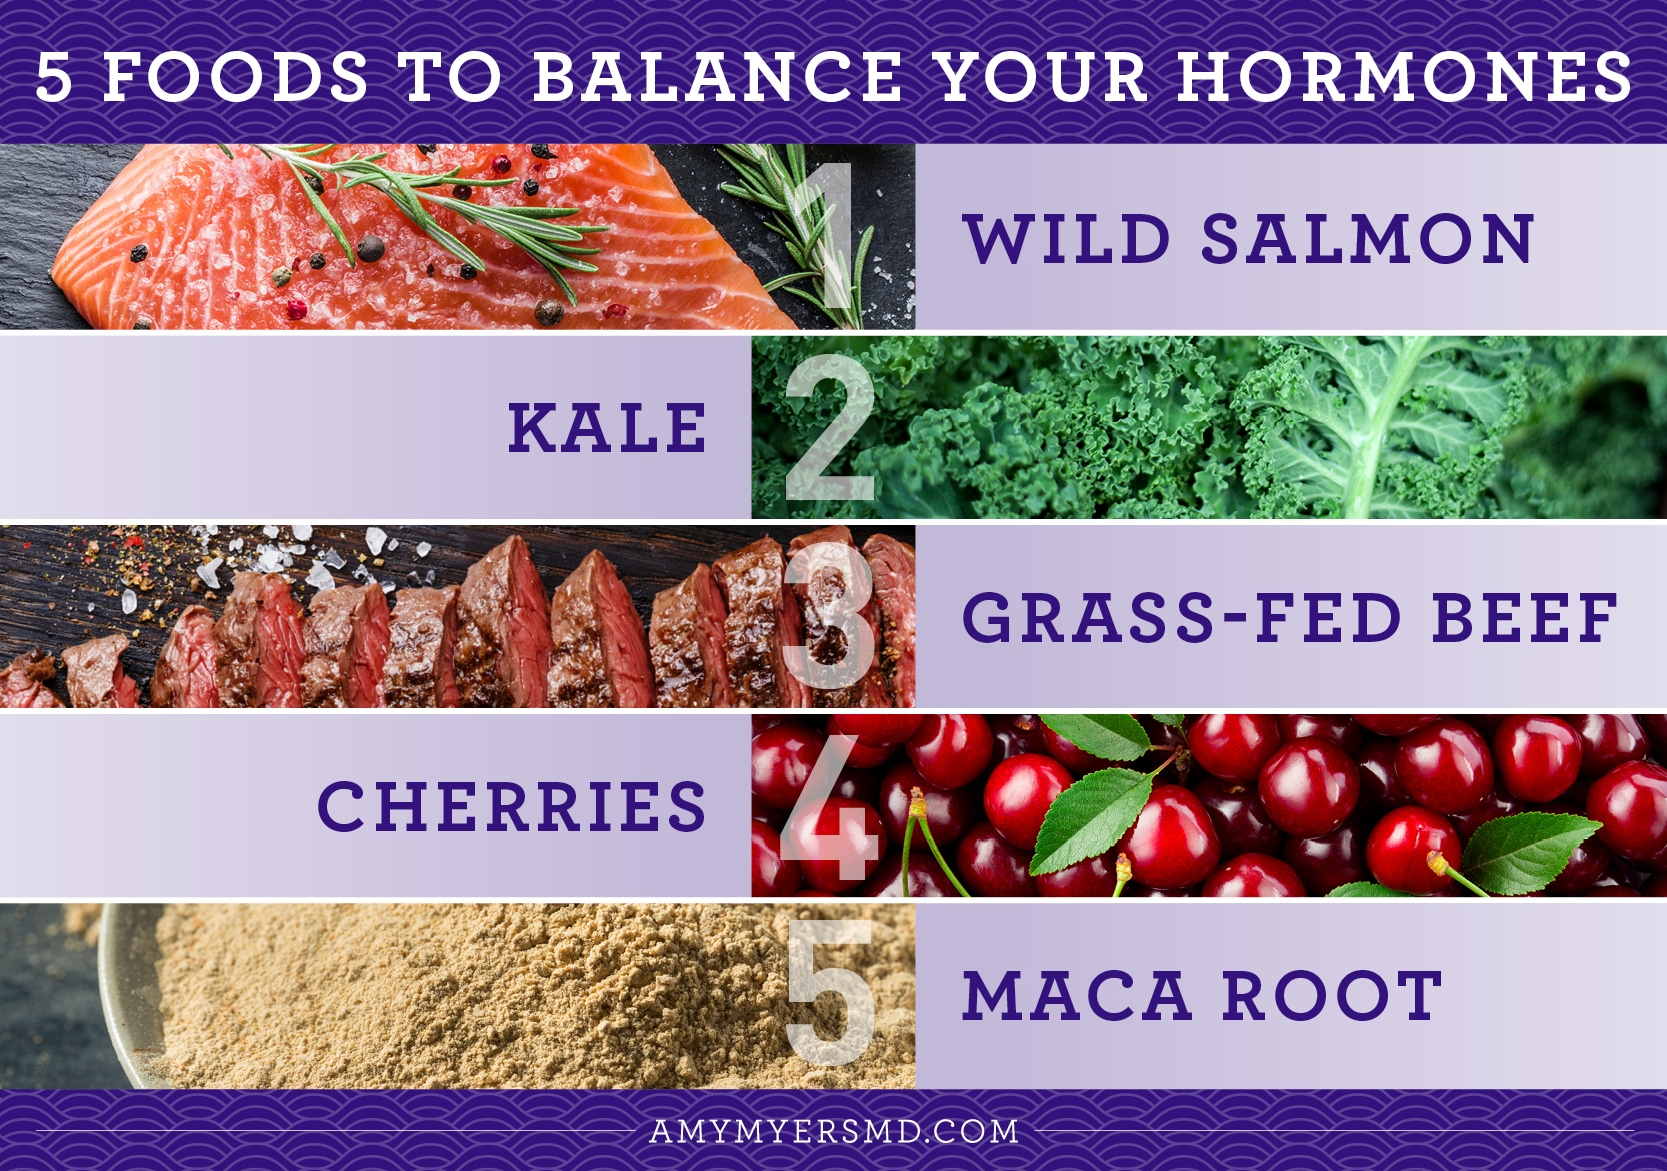 5 Foods to Balance Your Hormones - Infographic - Amy Myers MD